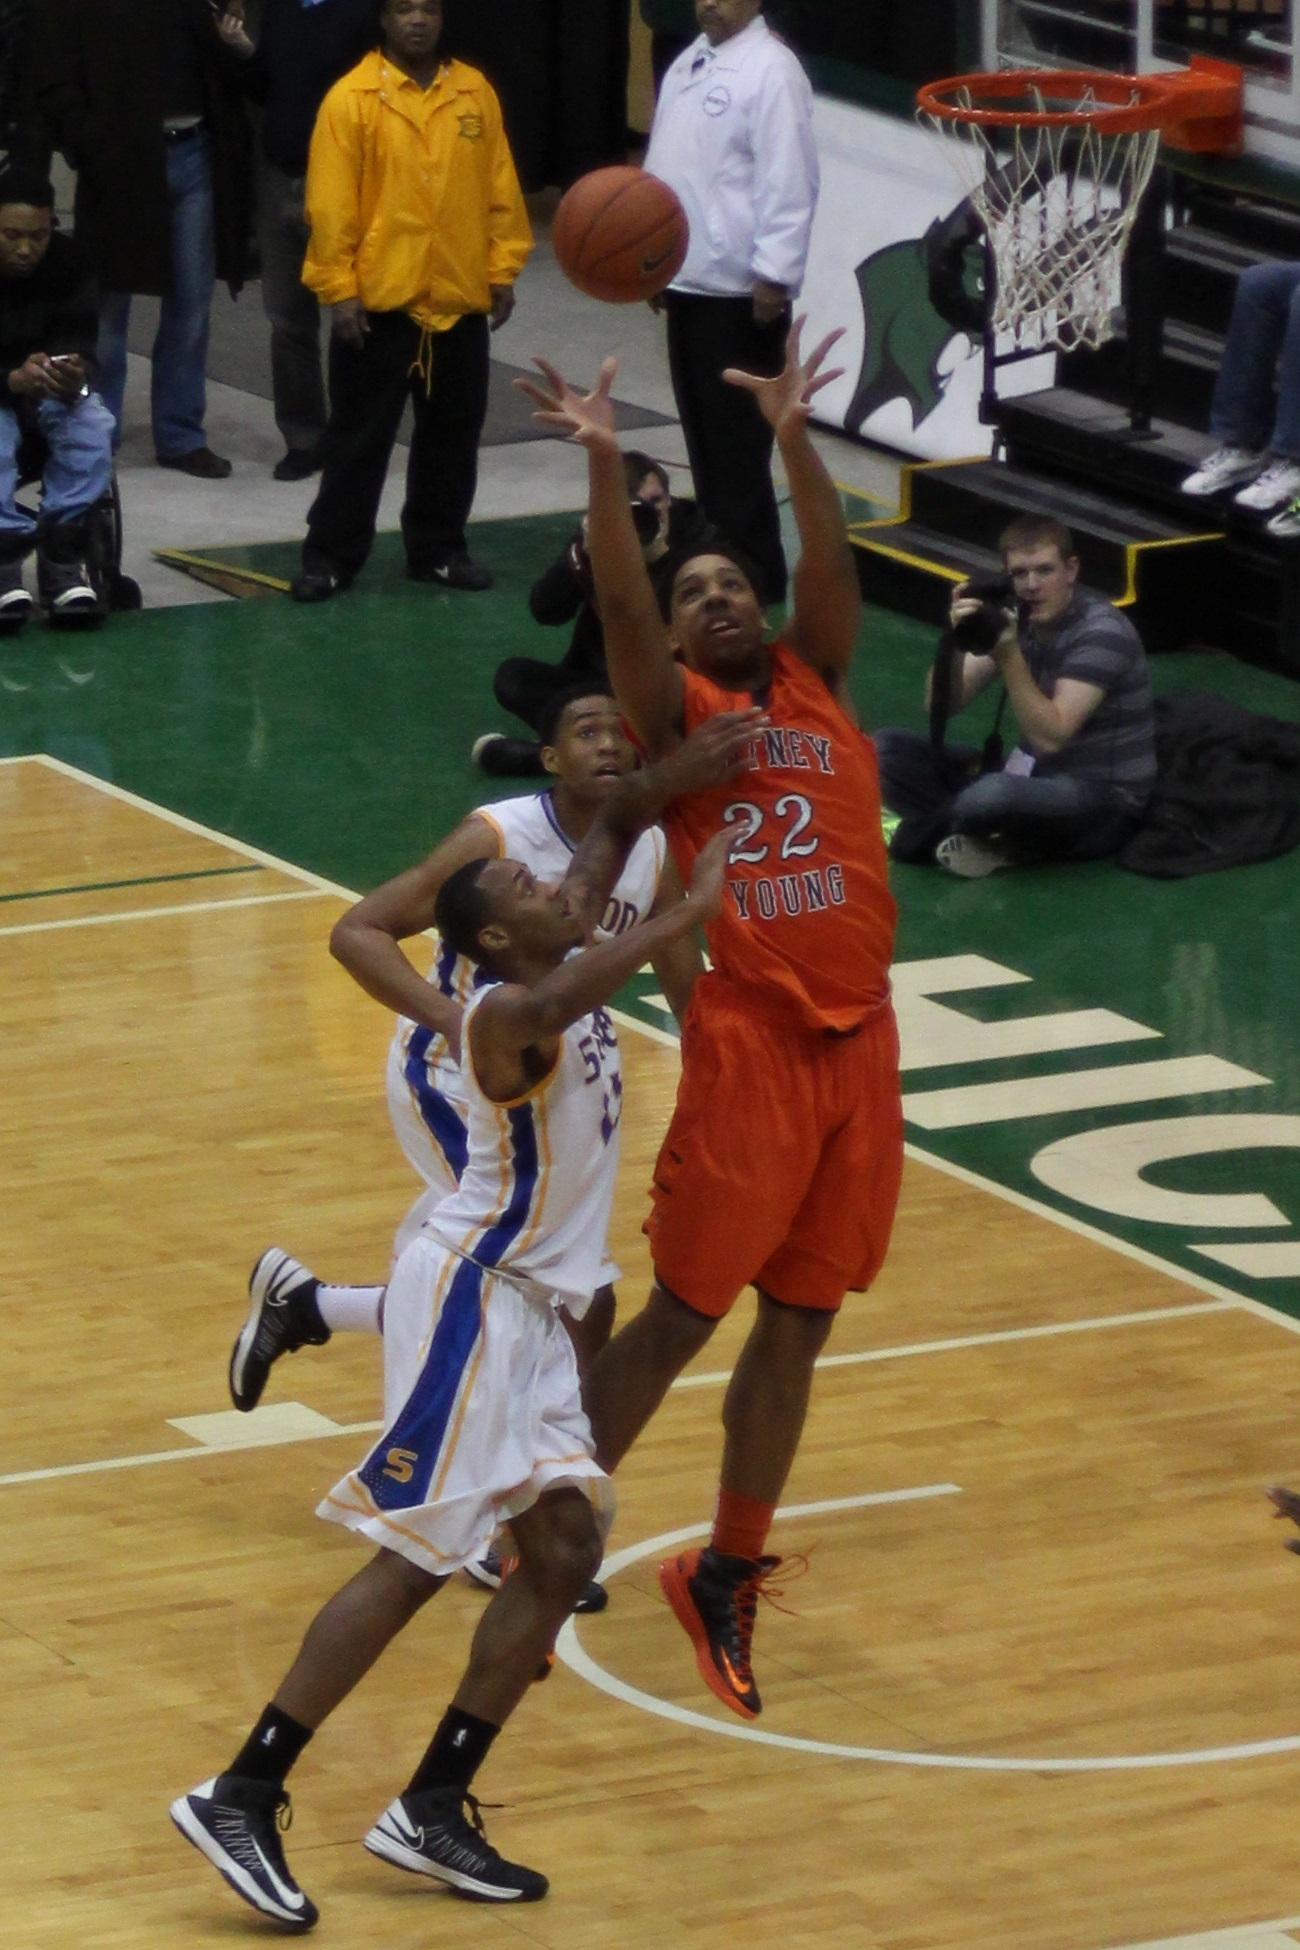 ... Jahlil Okafor jumps for a rebound at Simeon-Whitney Young game.JPG Jabari Parker Simeon